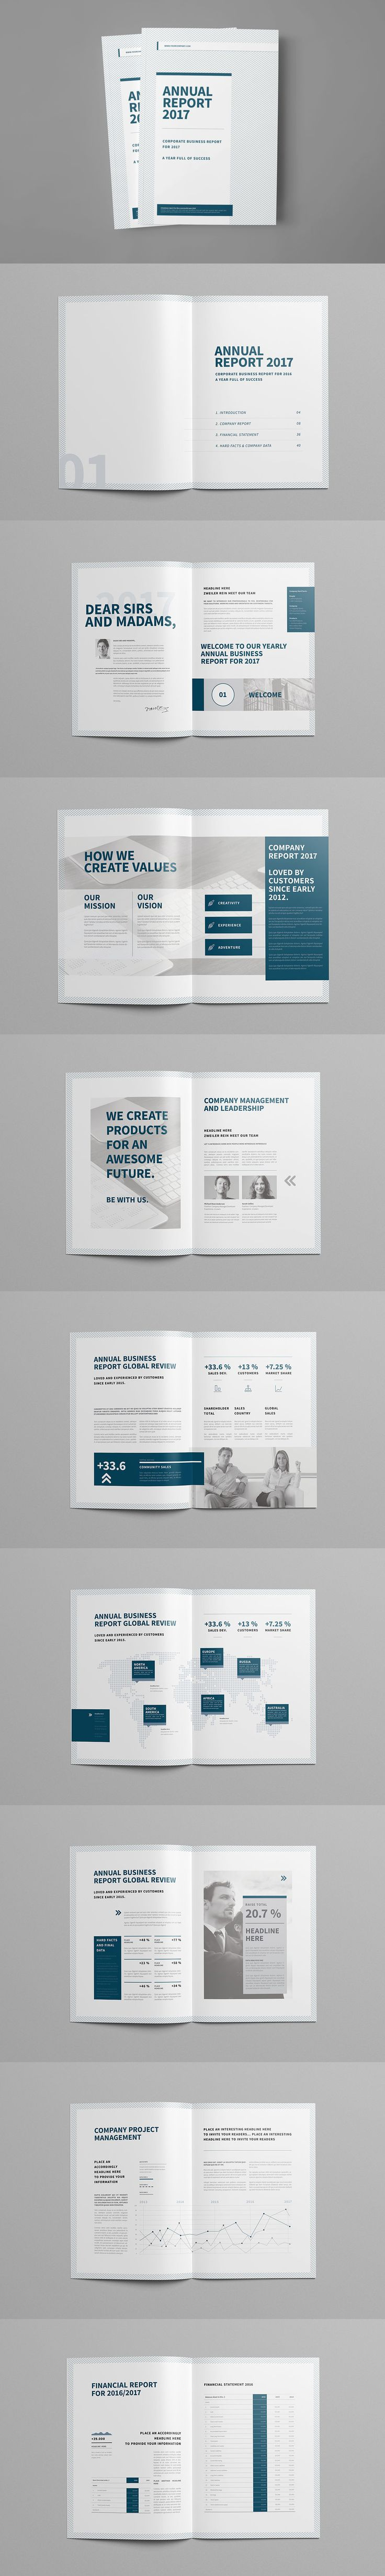 Minimal and Professional Annual Report or Company Brochure Template InDesign INDD